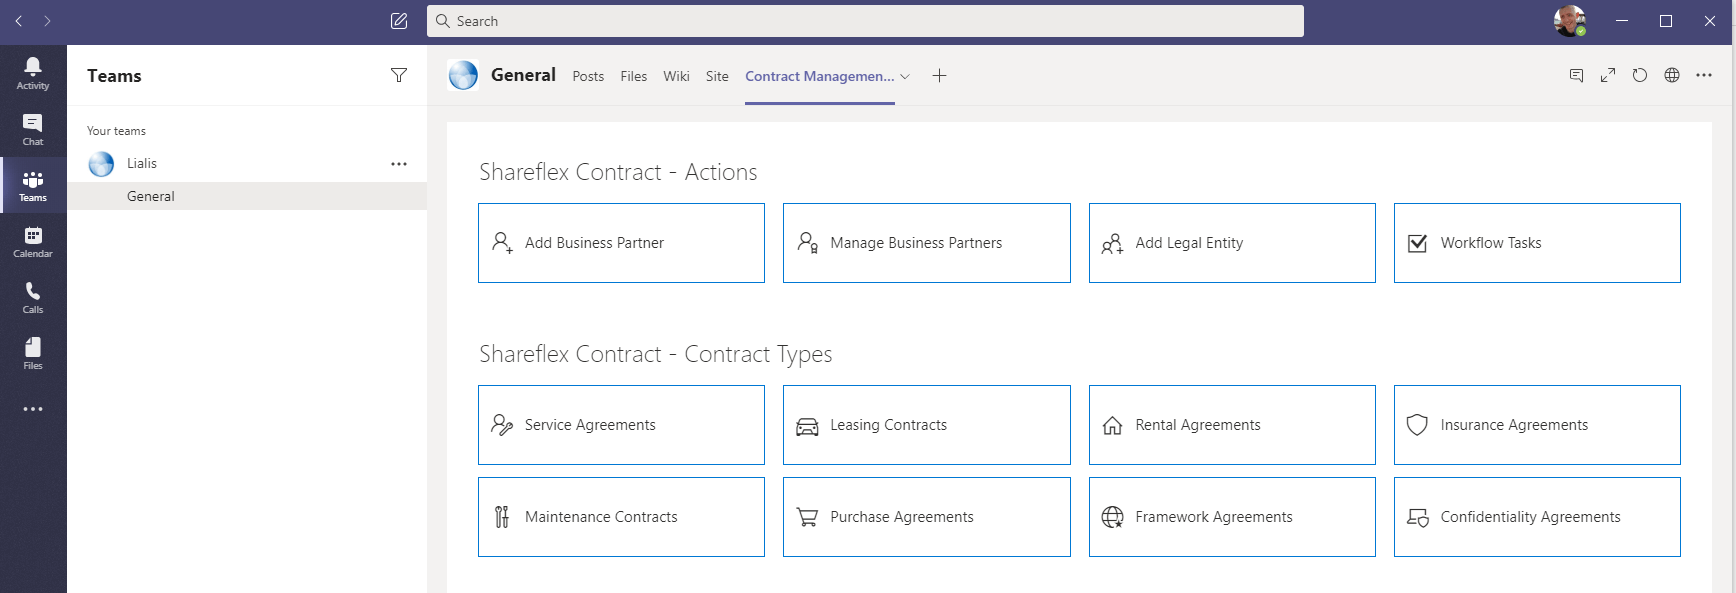 Shareflex support for Microsoft Teams - Contract Management